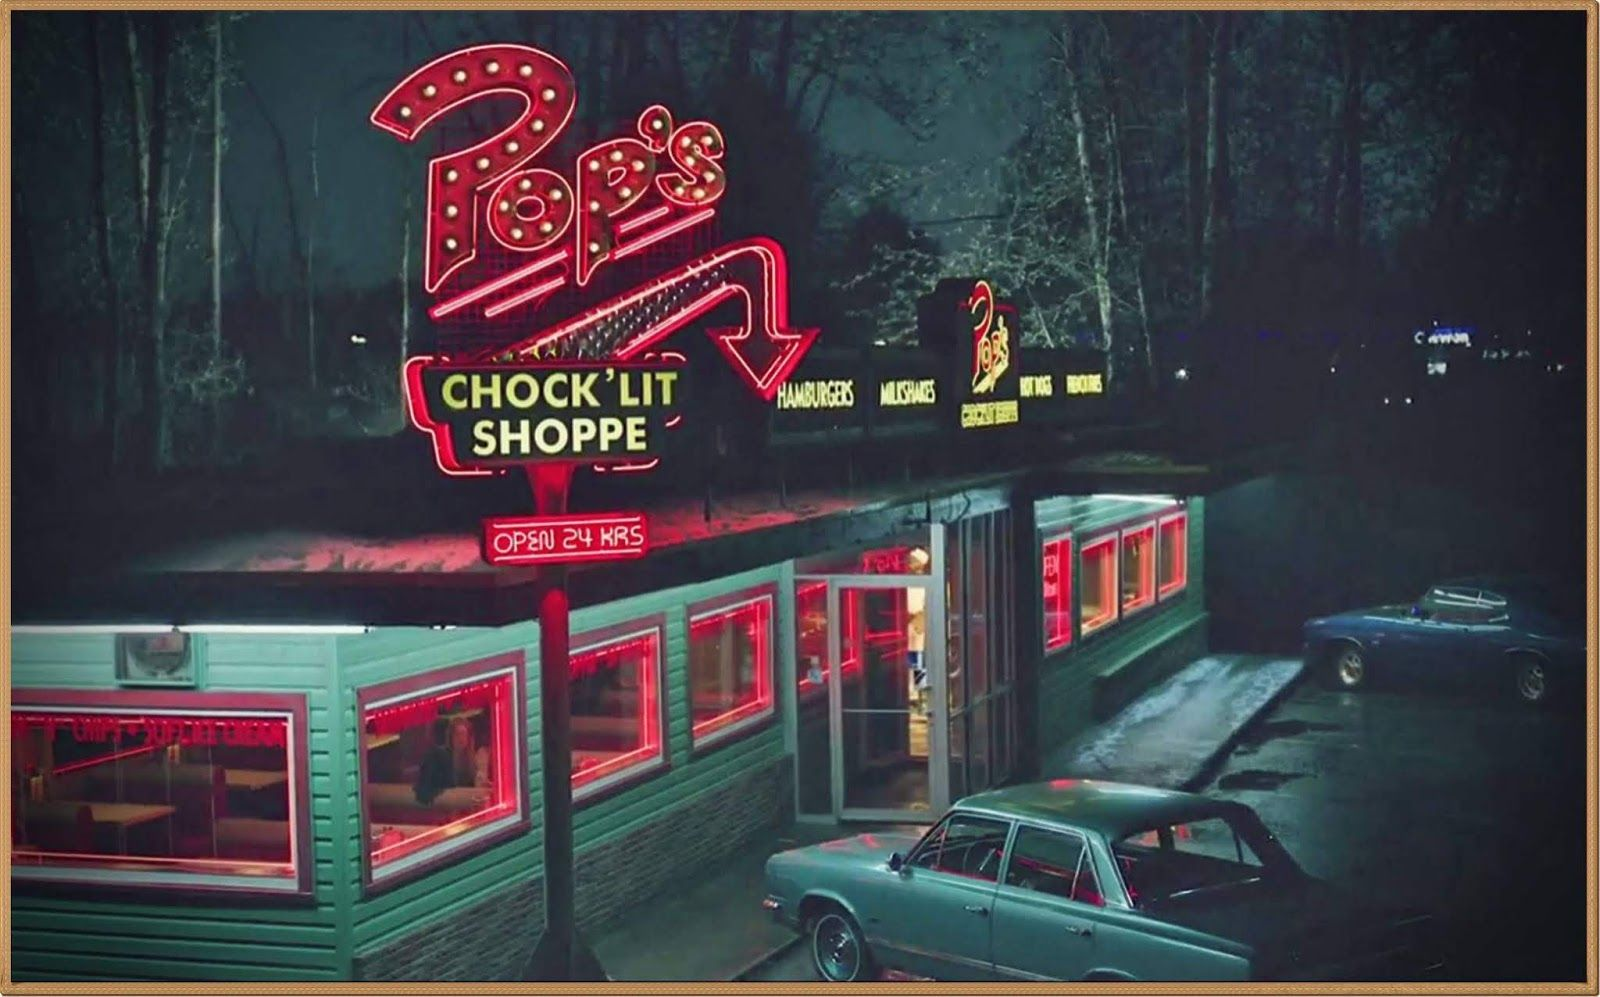 Which movie/TV series is this diner from? 24